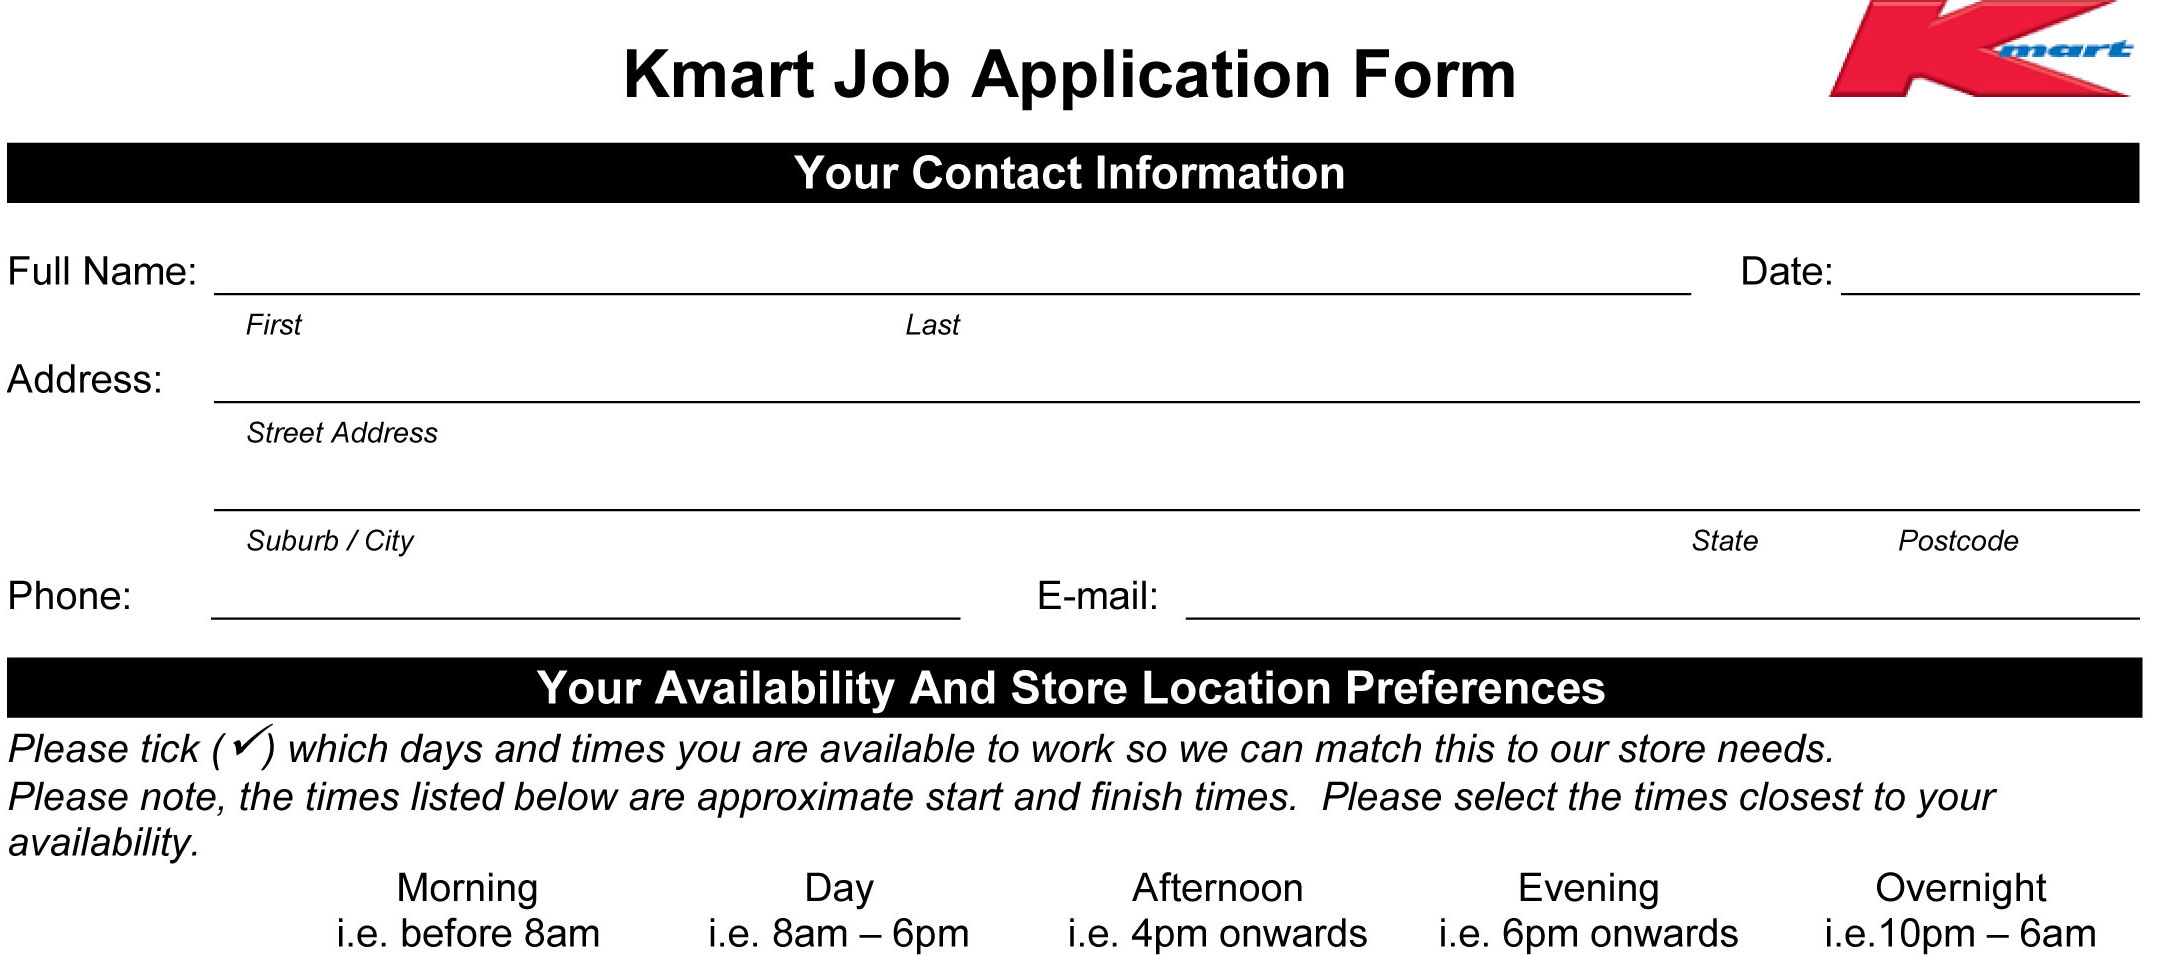 Burger King Job Application Printable Job Employment Forms Kmart Job Application Printable Job Employment Forms